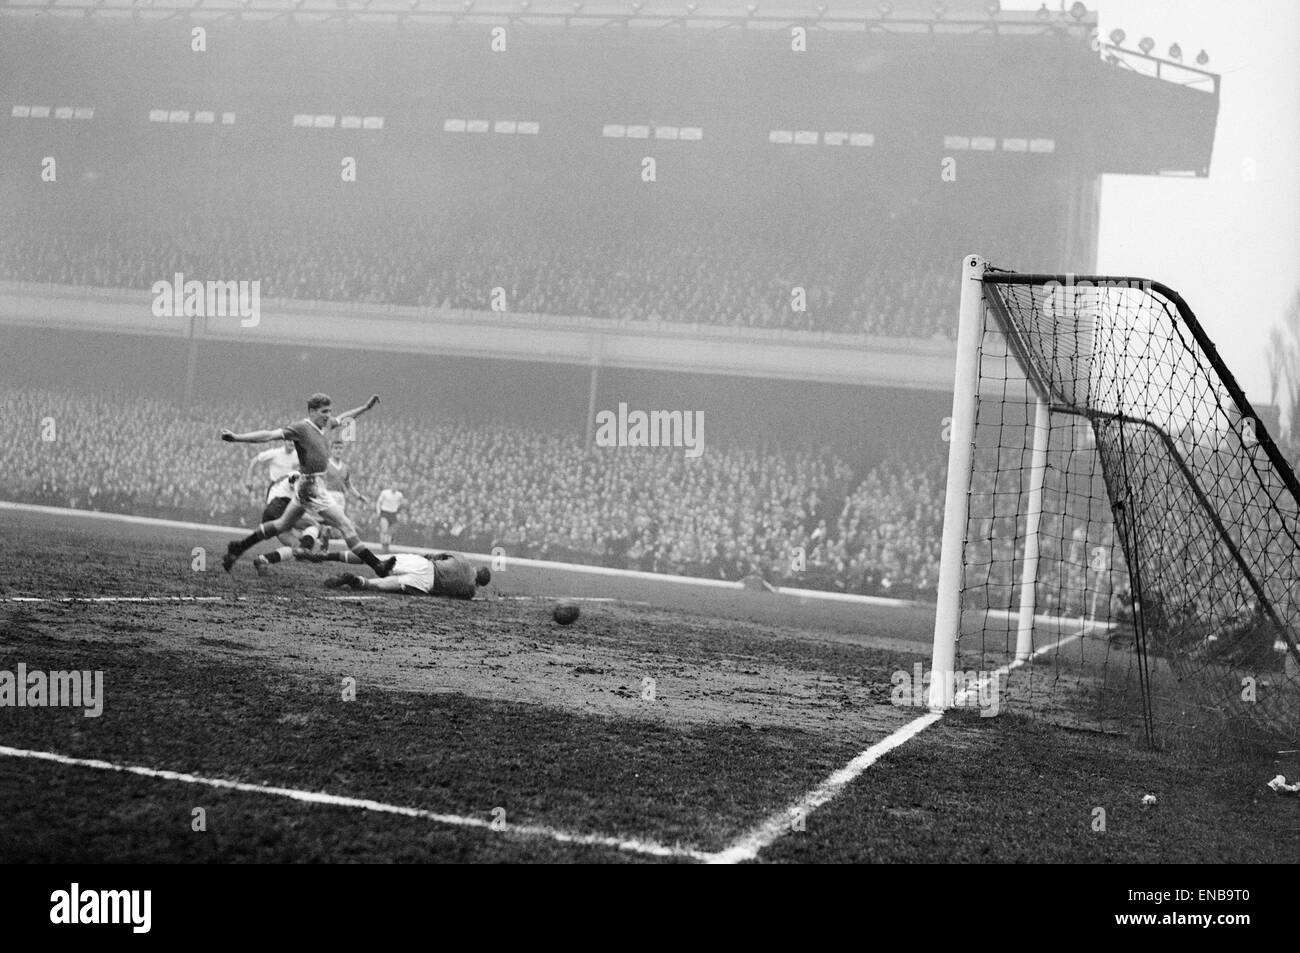 Manchester United v Fulham in the FA Cup Semi Final Goalmouth action during the match. 26th March 1958 - Stock Image